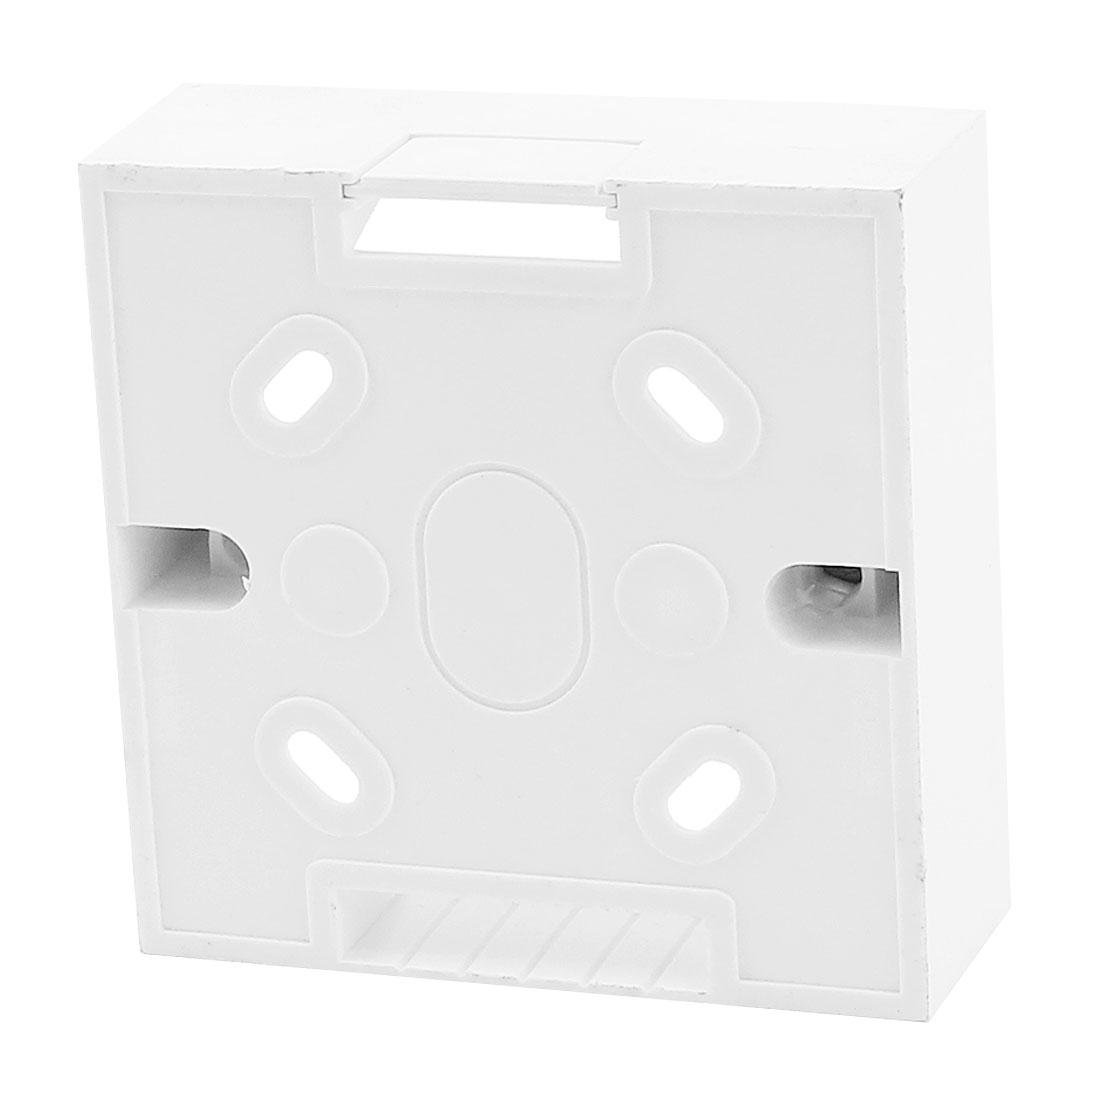 RJ45 Cat5e Cat6 Network Ethernet Socket Wall Mount Back Box Plate White